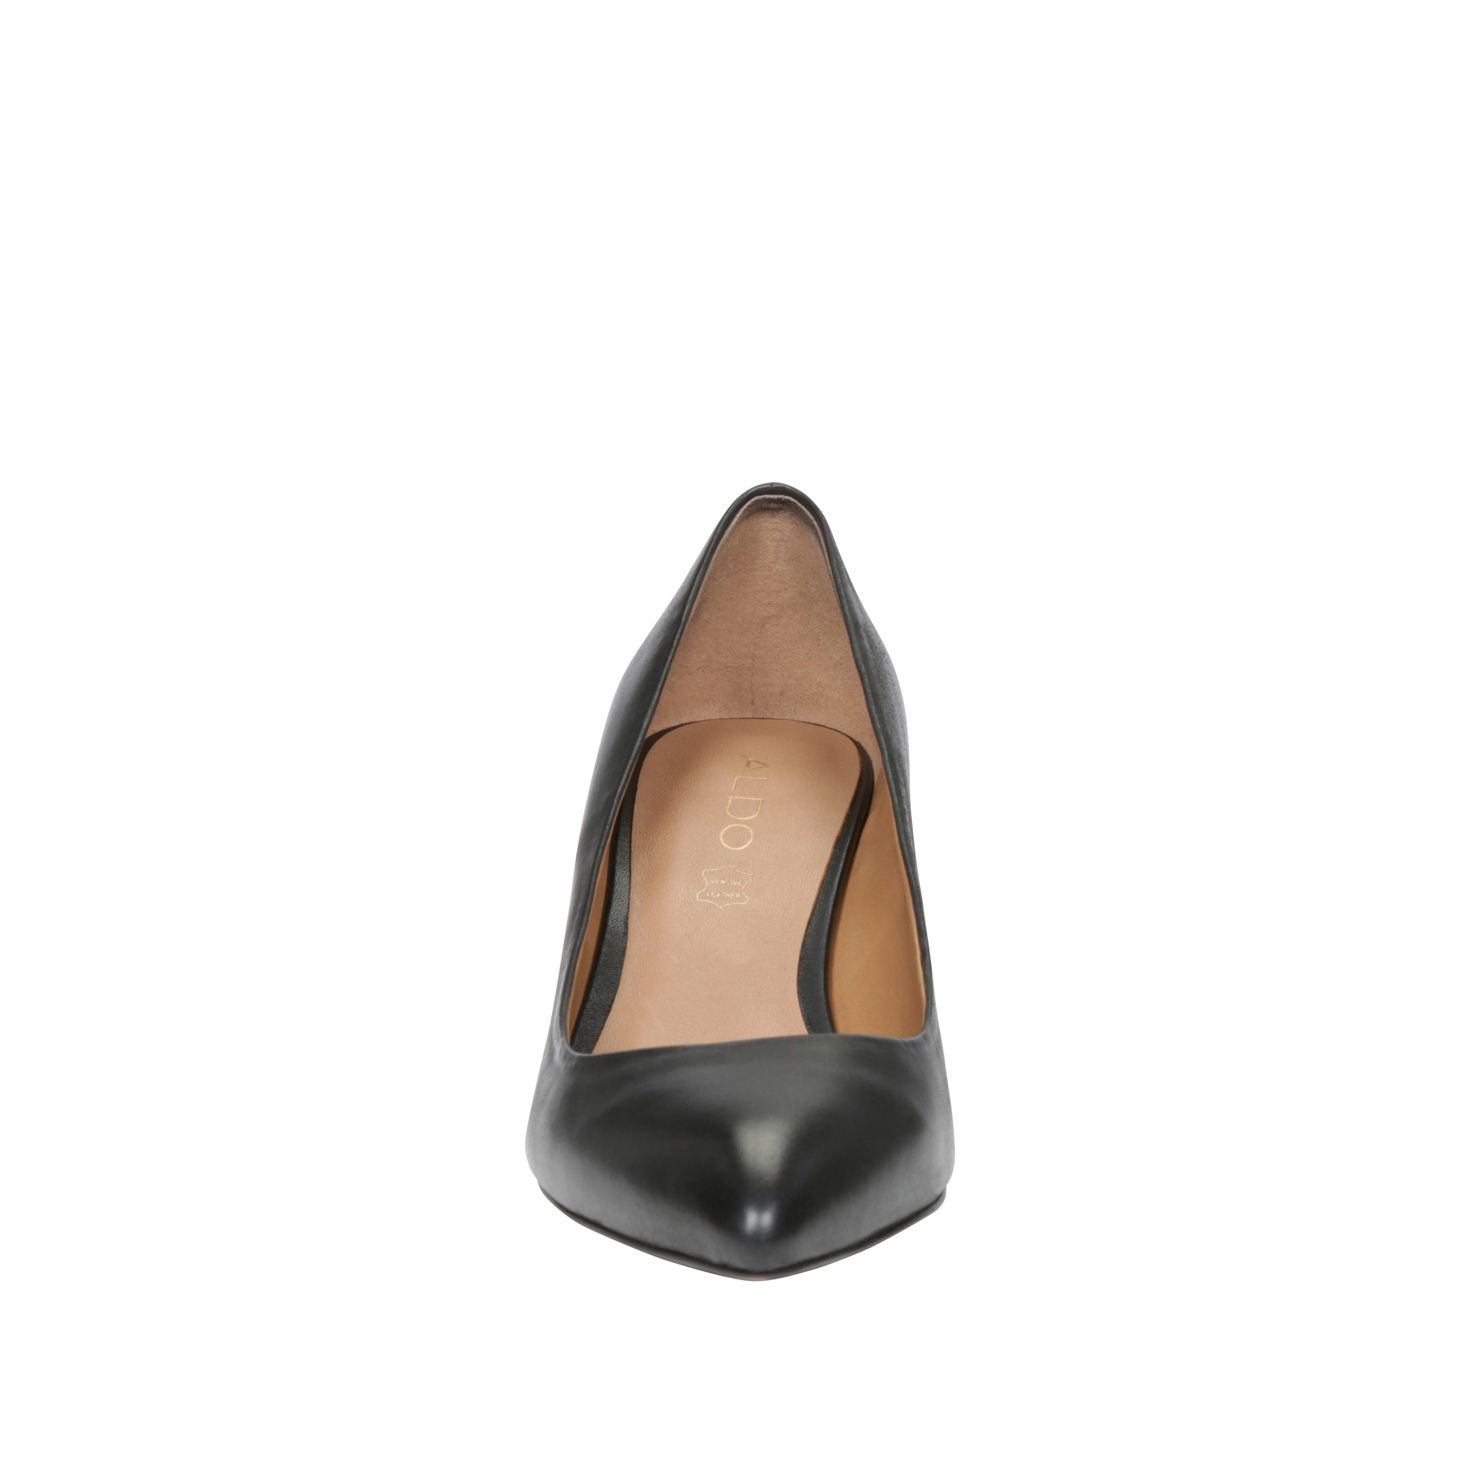 Pecchi almond toe mid heel shoes